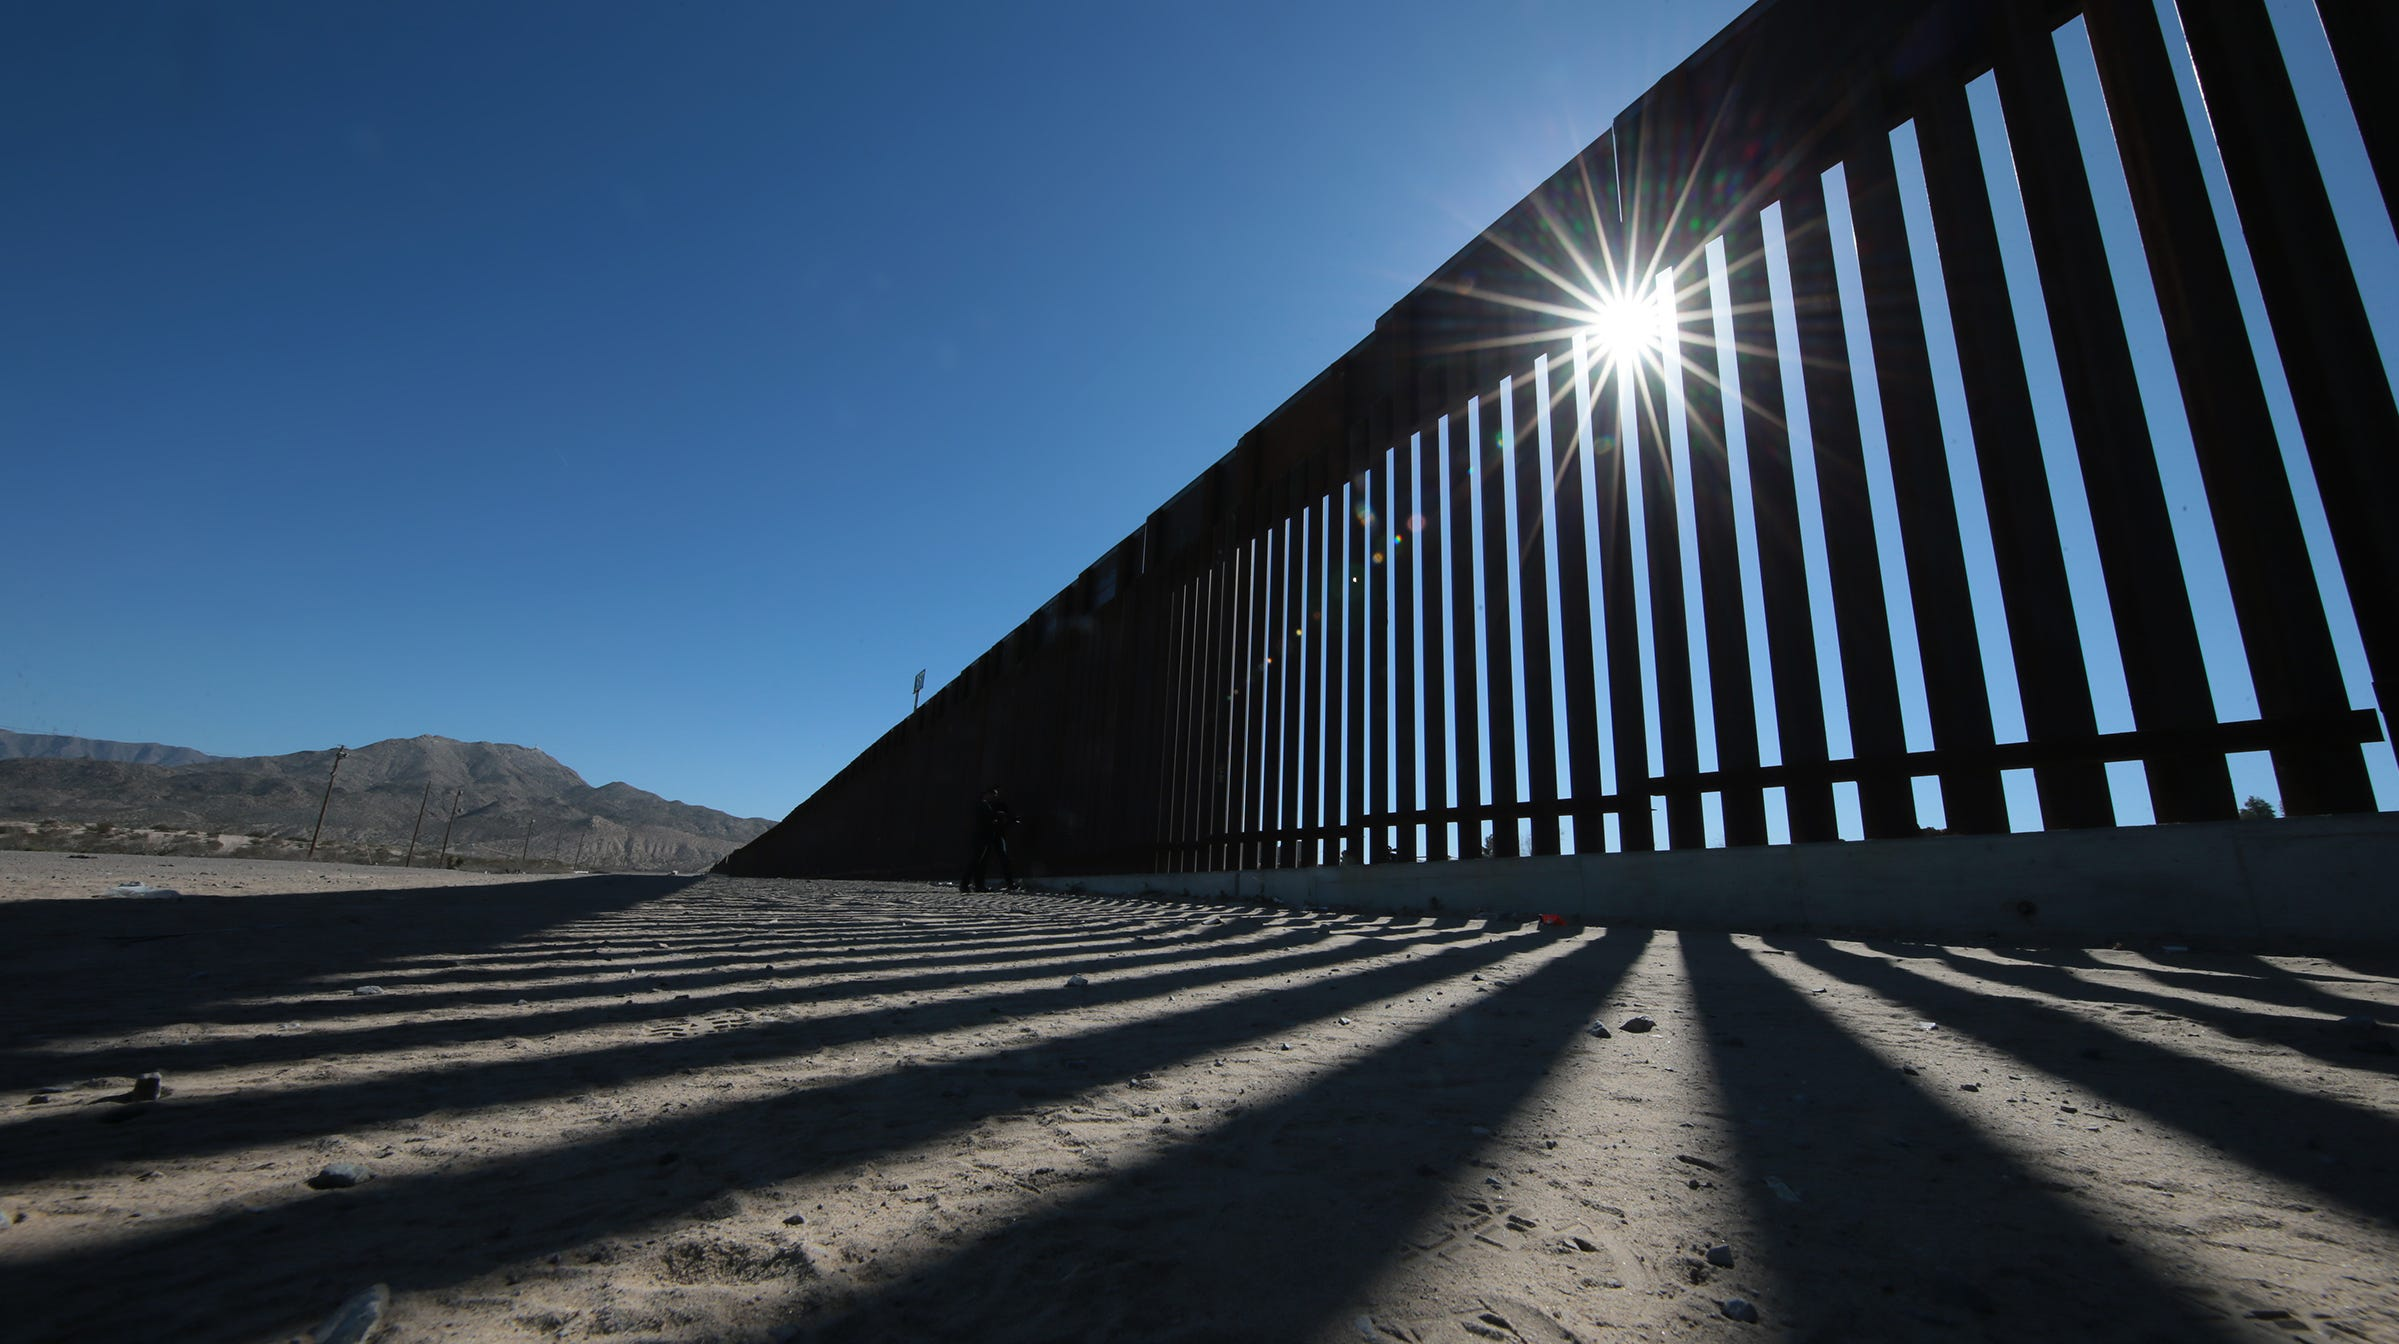 Woman who fell from Sunland Park border wall leaves behind three girls, distraught family